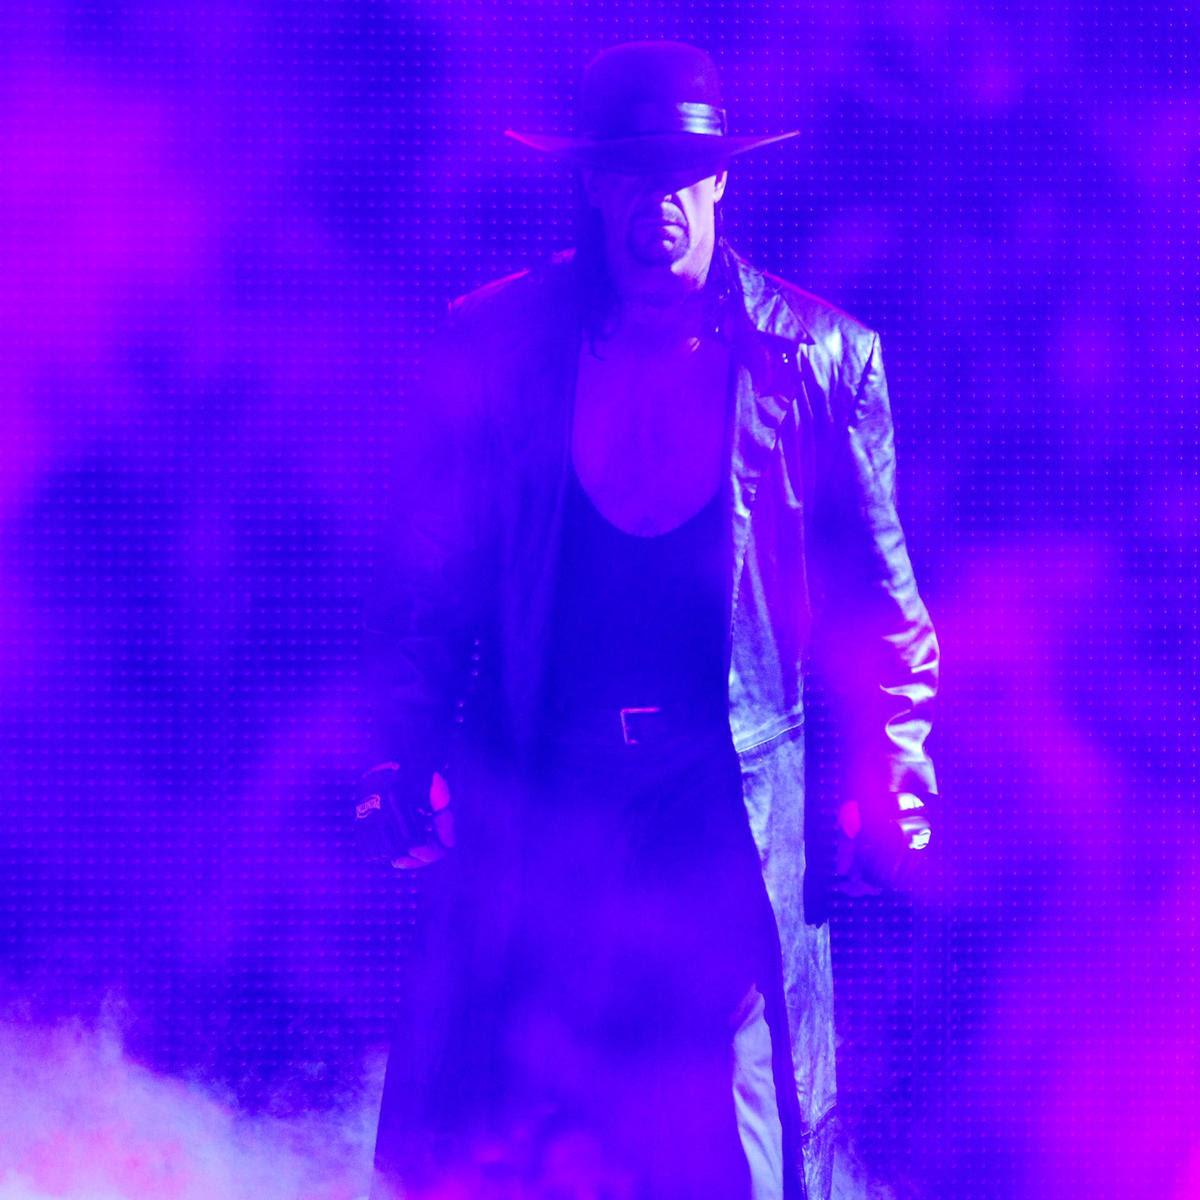 But he gets The Undertaker instead.